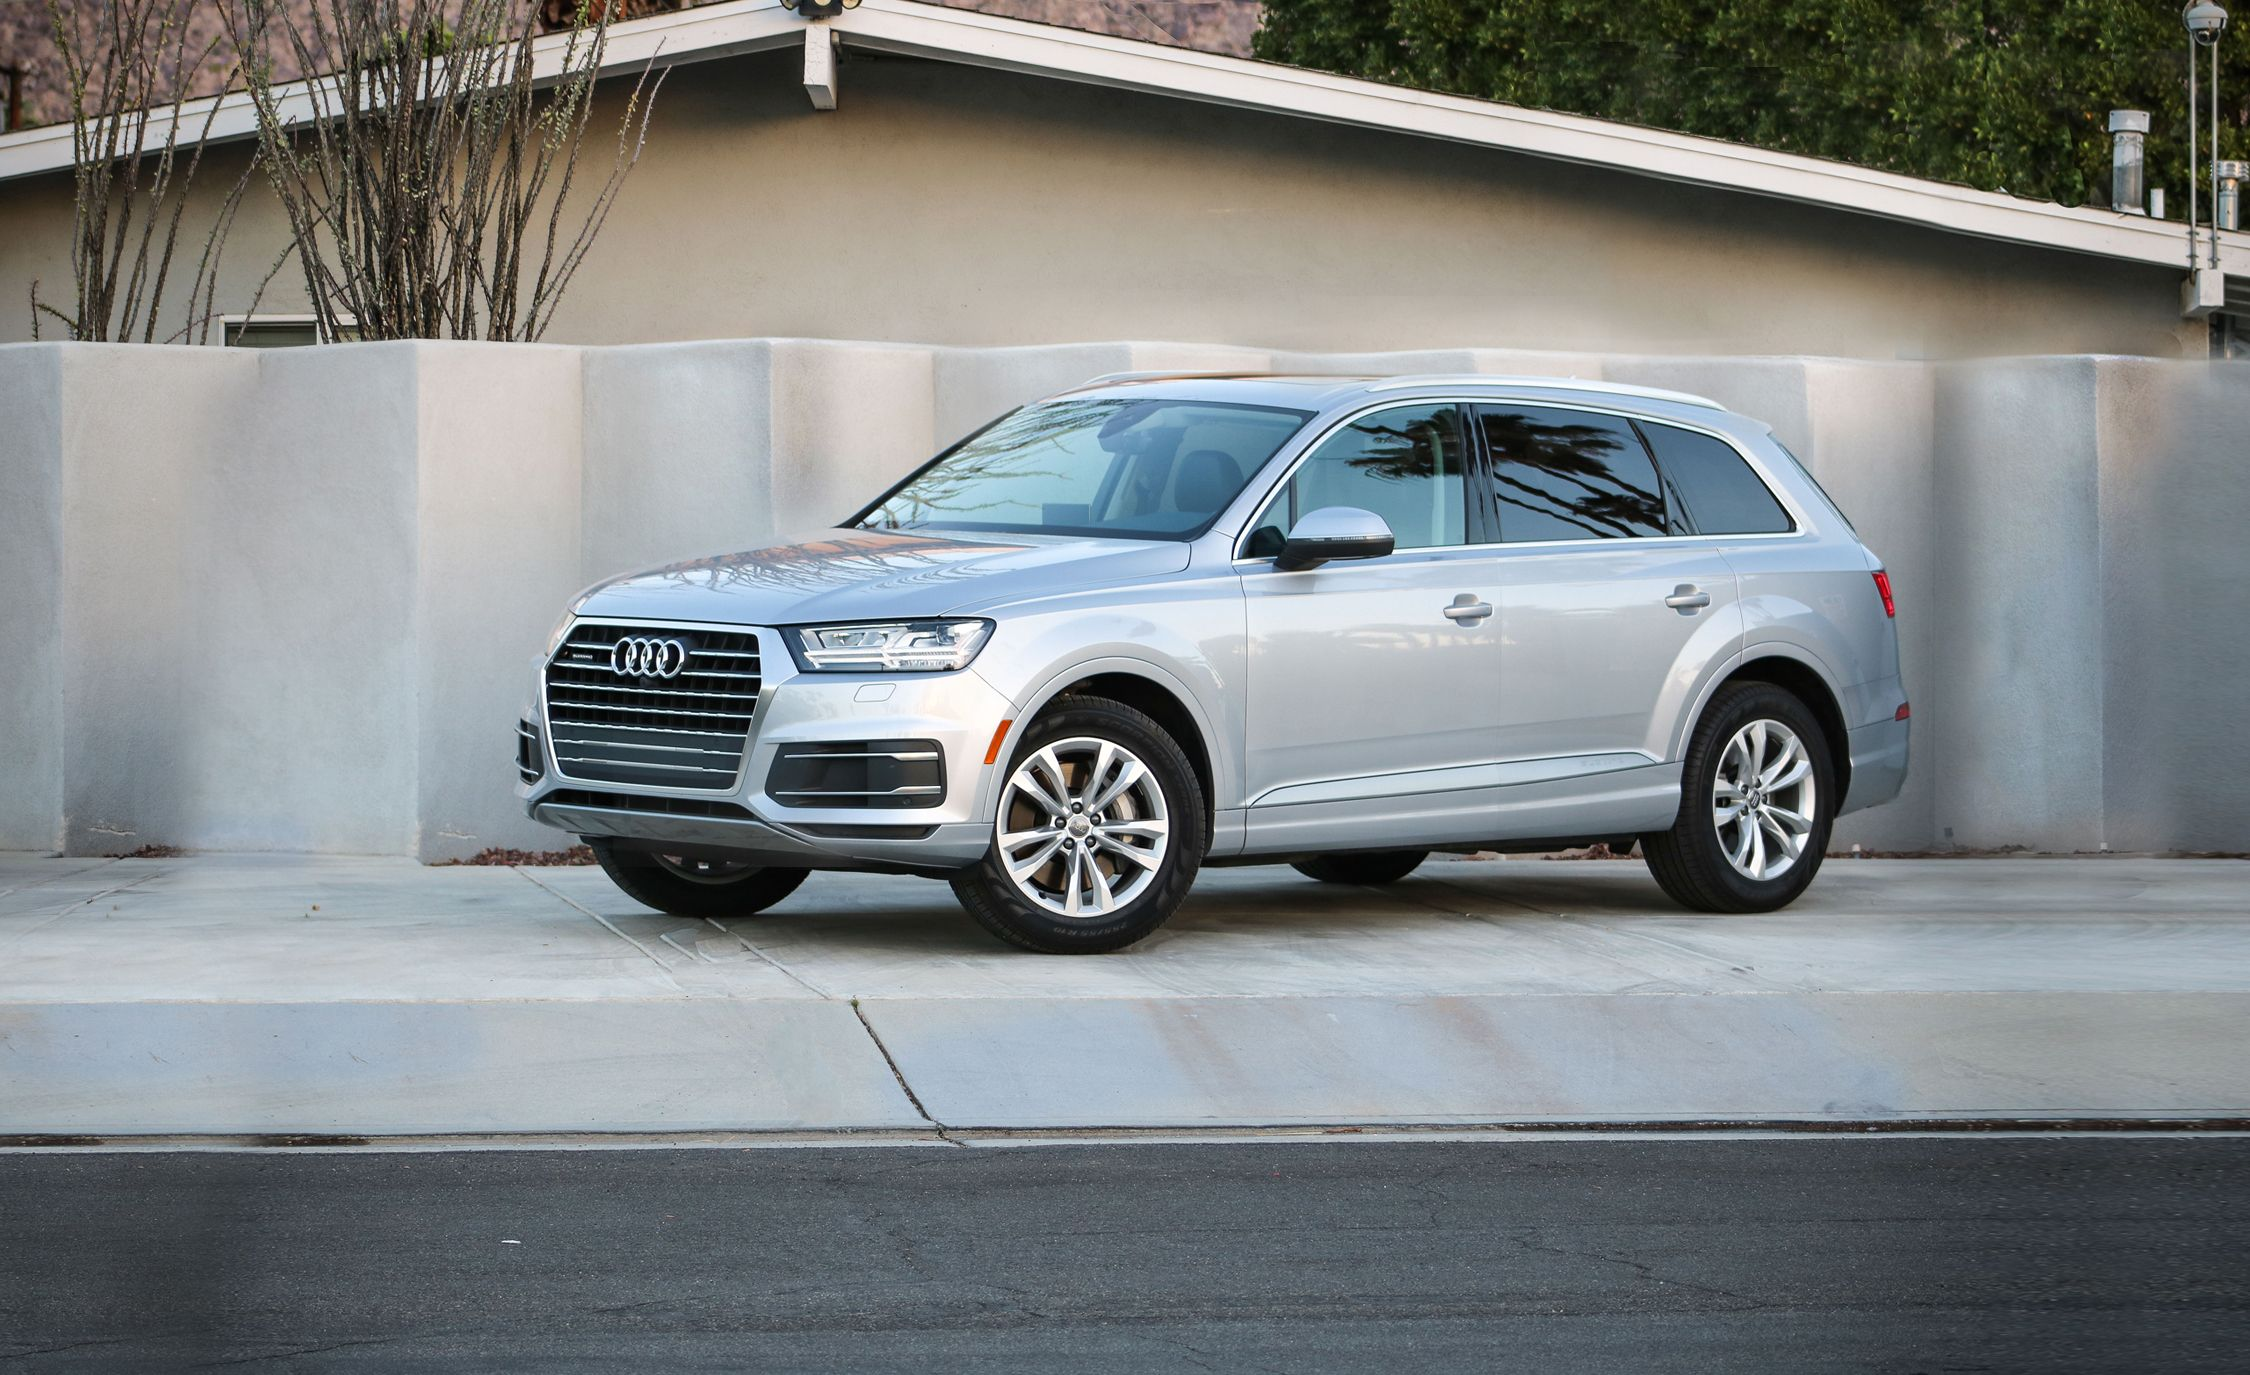 Audi Q7 Reviews Audi Q7 Price s and Specs